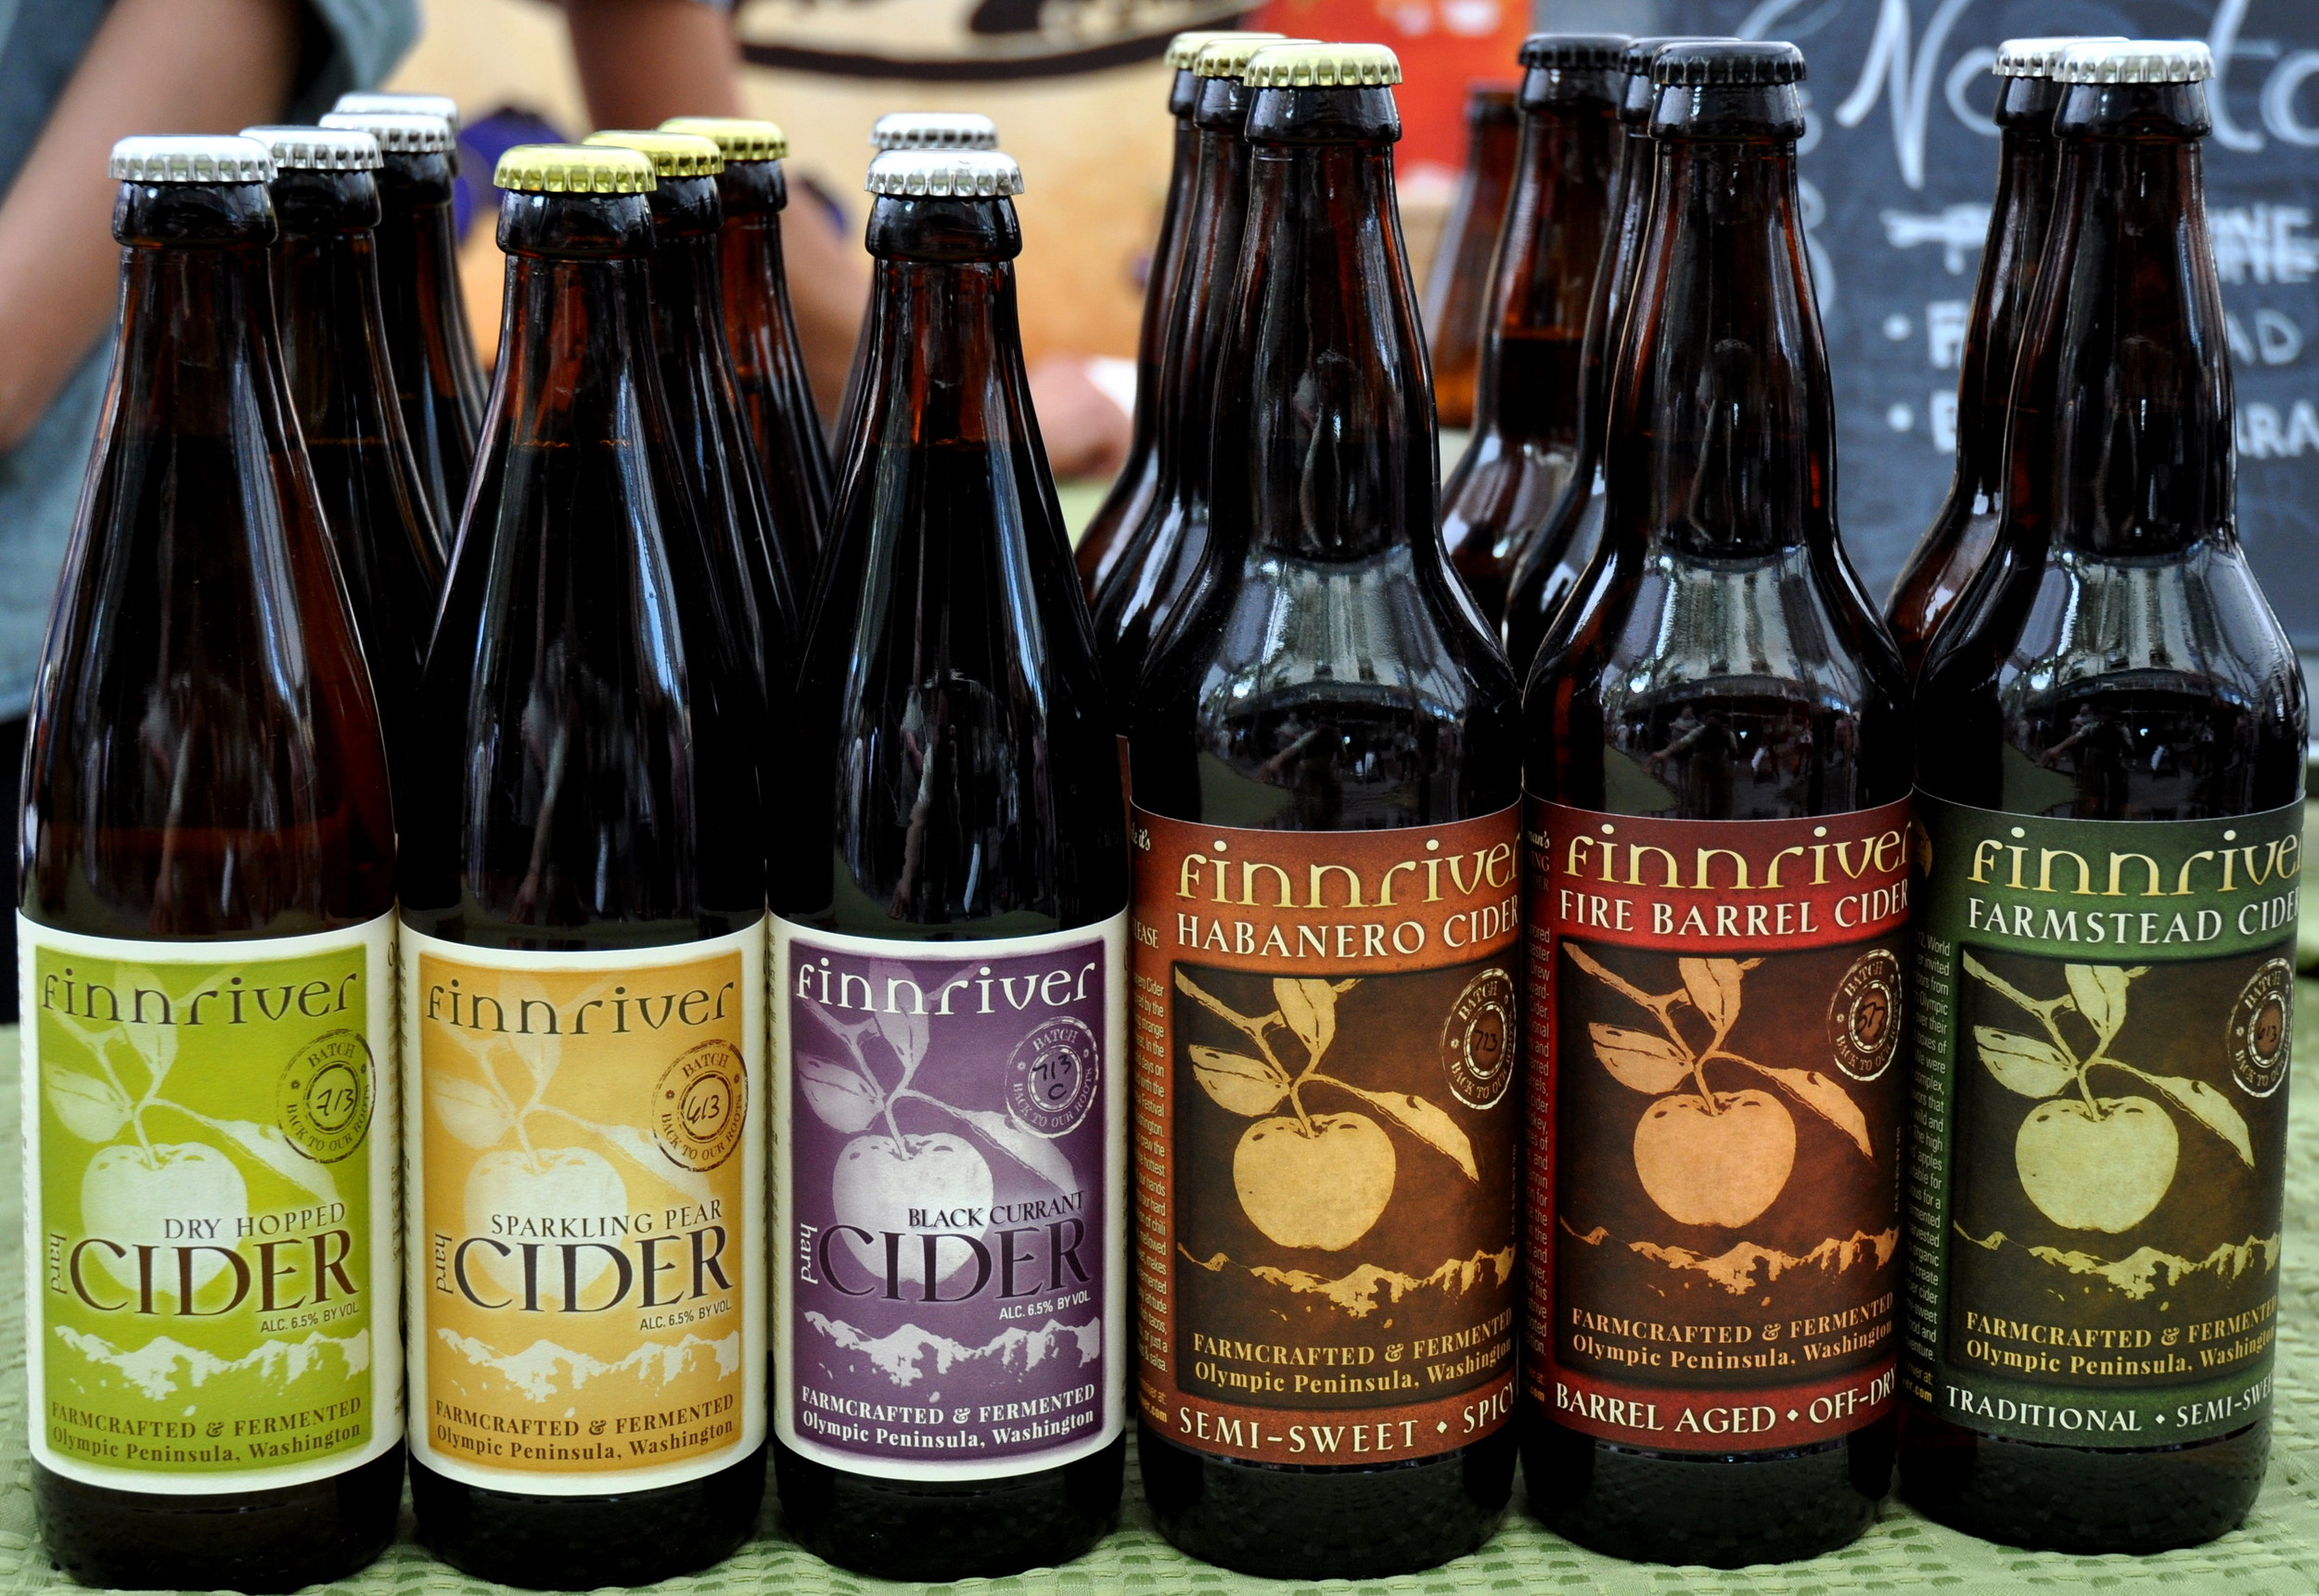 Hard ciders from Finnriver Farm & Cidery. Photo copyright 2013 by Zachary D. Lyons.